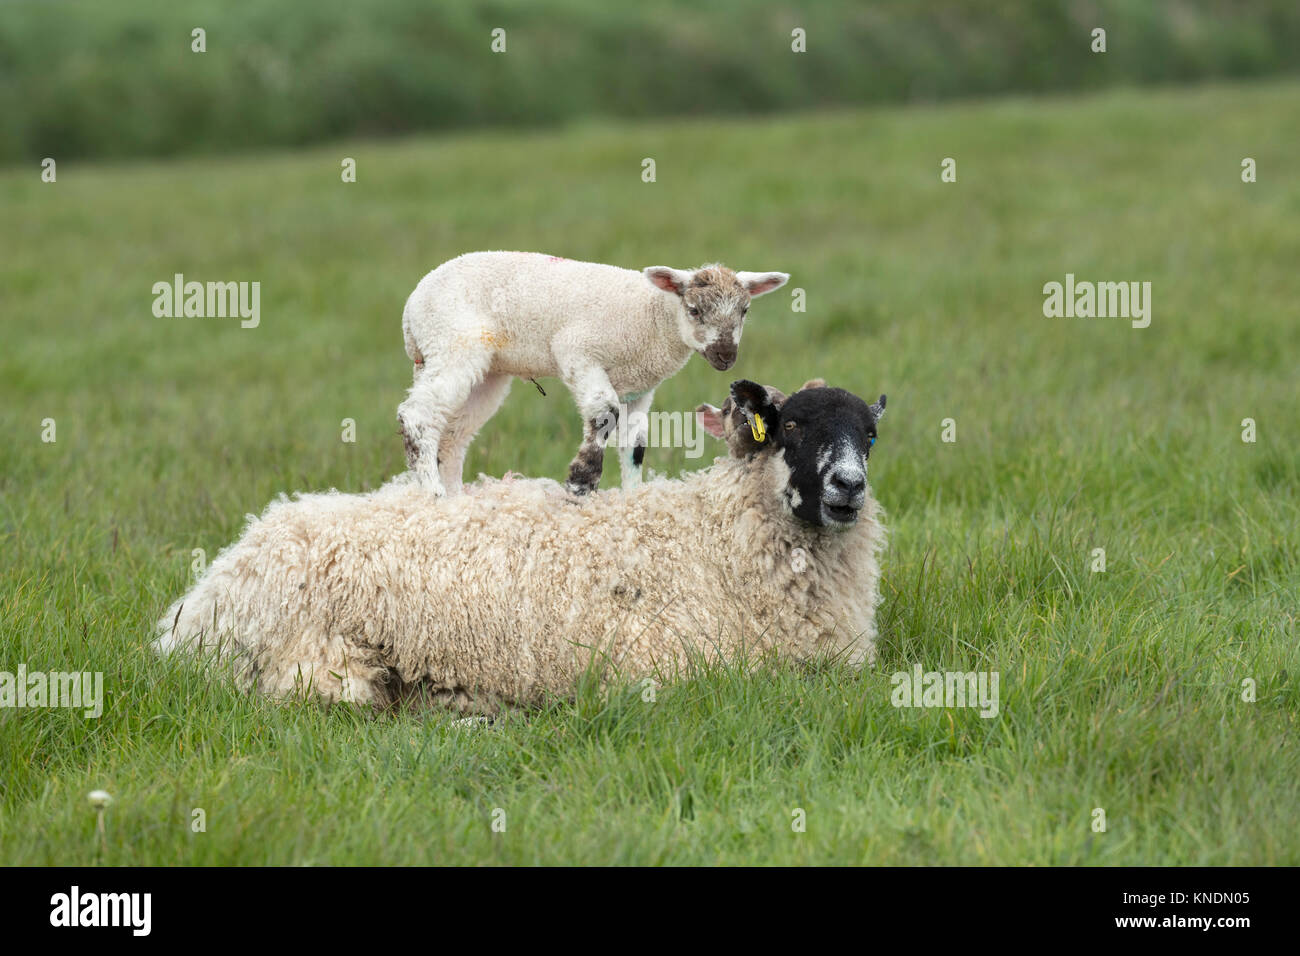 Sheep Ewe With Lambs; One on her Back Devon; UK - Stock Image